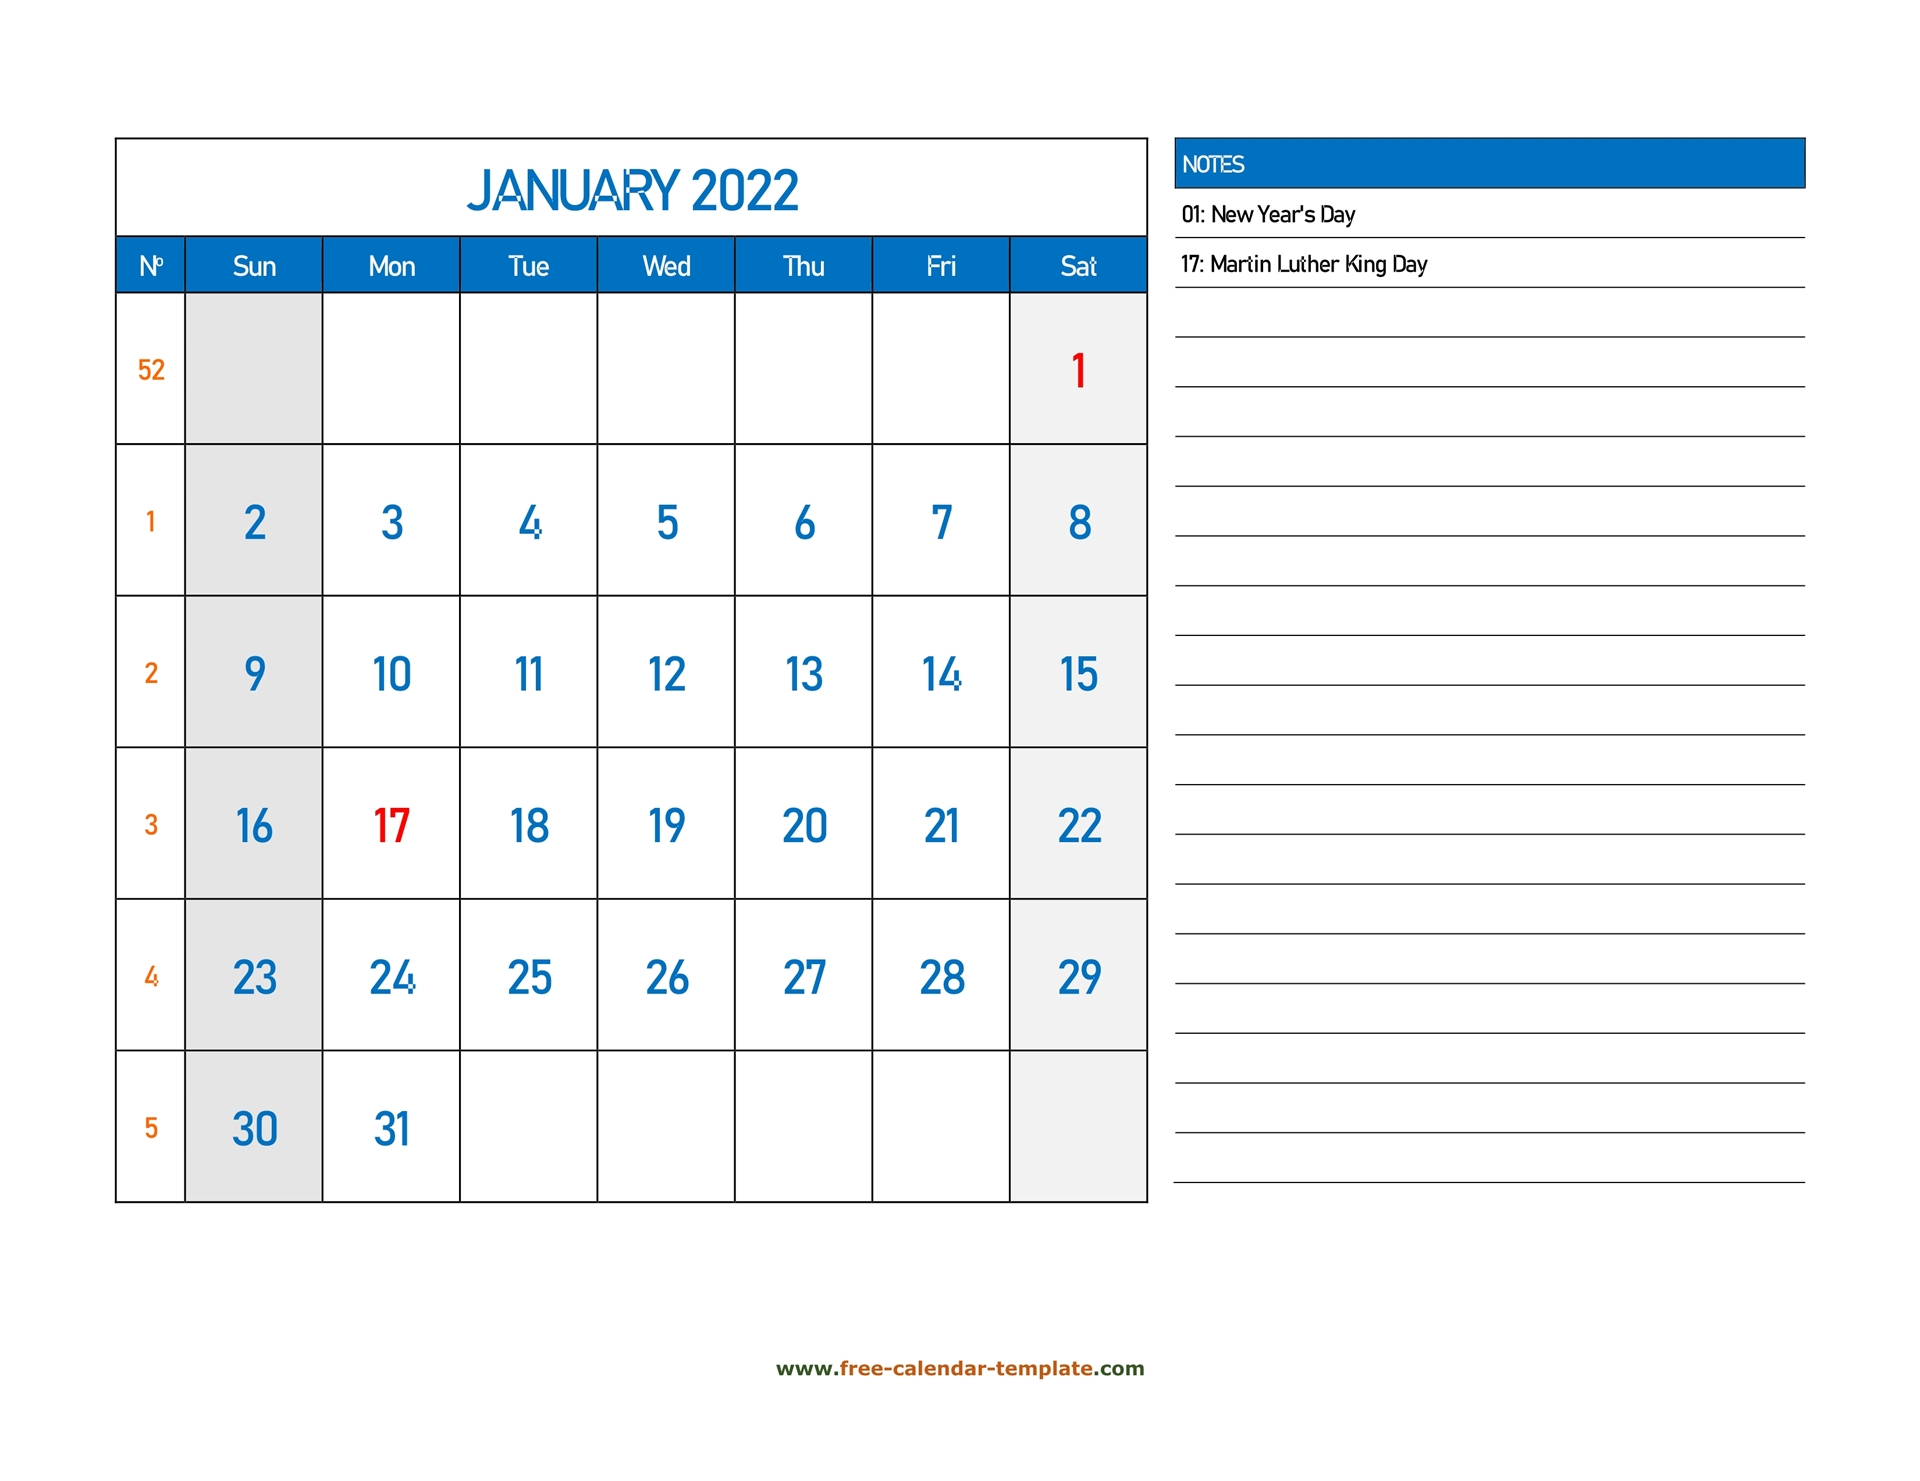 January Calendar 2022 Grid Lines For Holidays And Notes Intended For Calendar 2022 January Printable